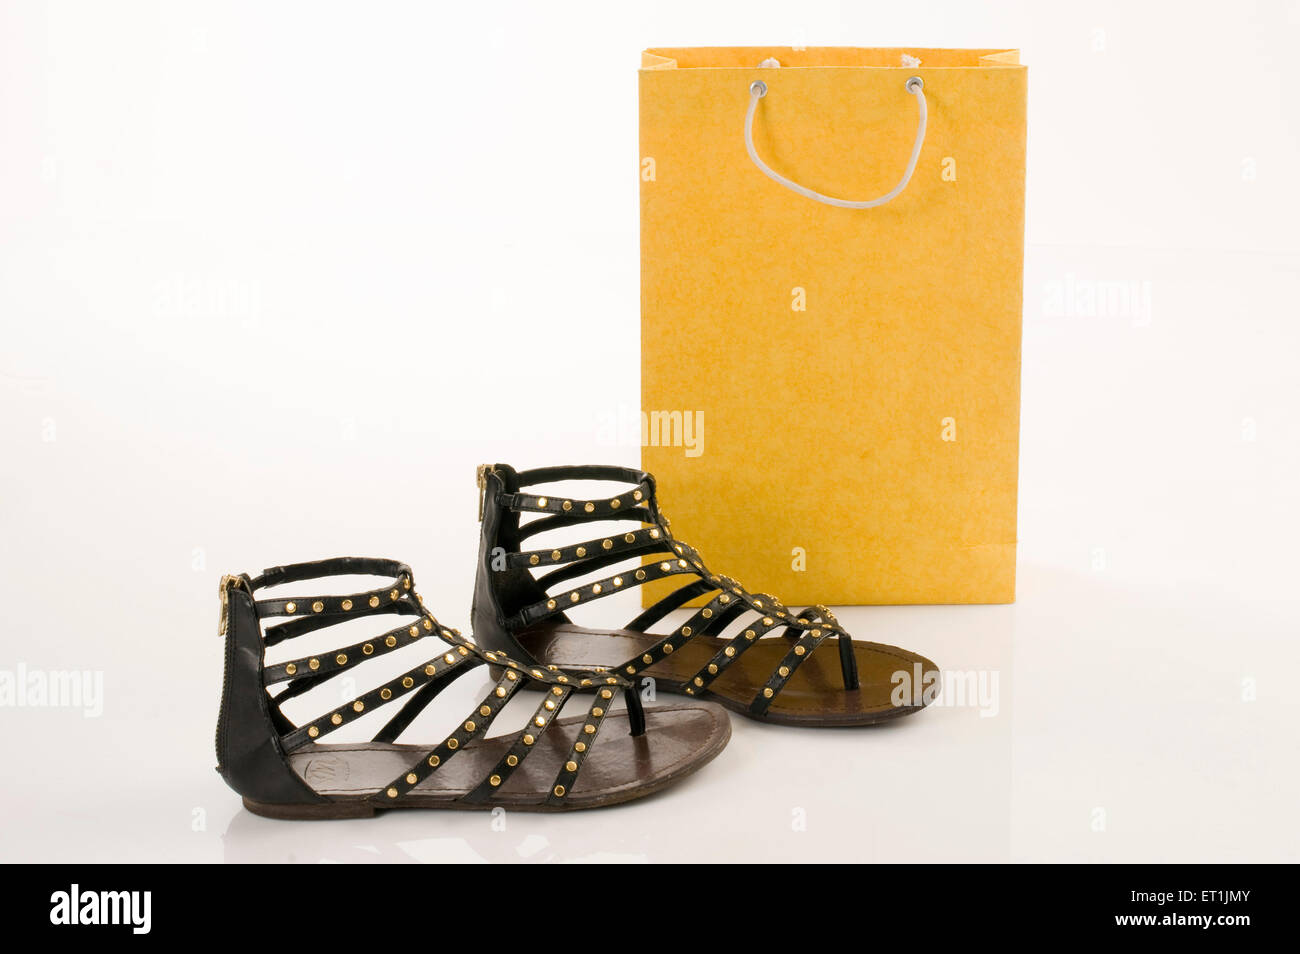 Shopping bag with fancy leather sandal Pune Maharashtra India Asia June 2011 - Stock Image